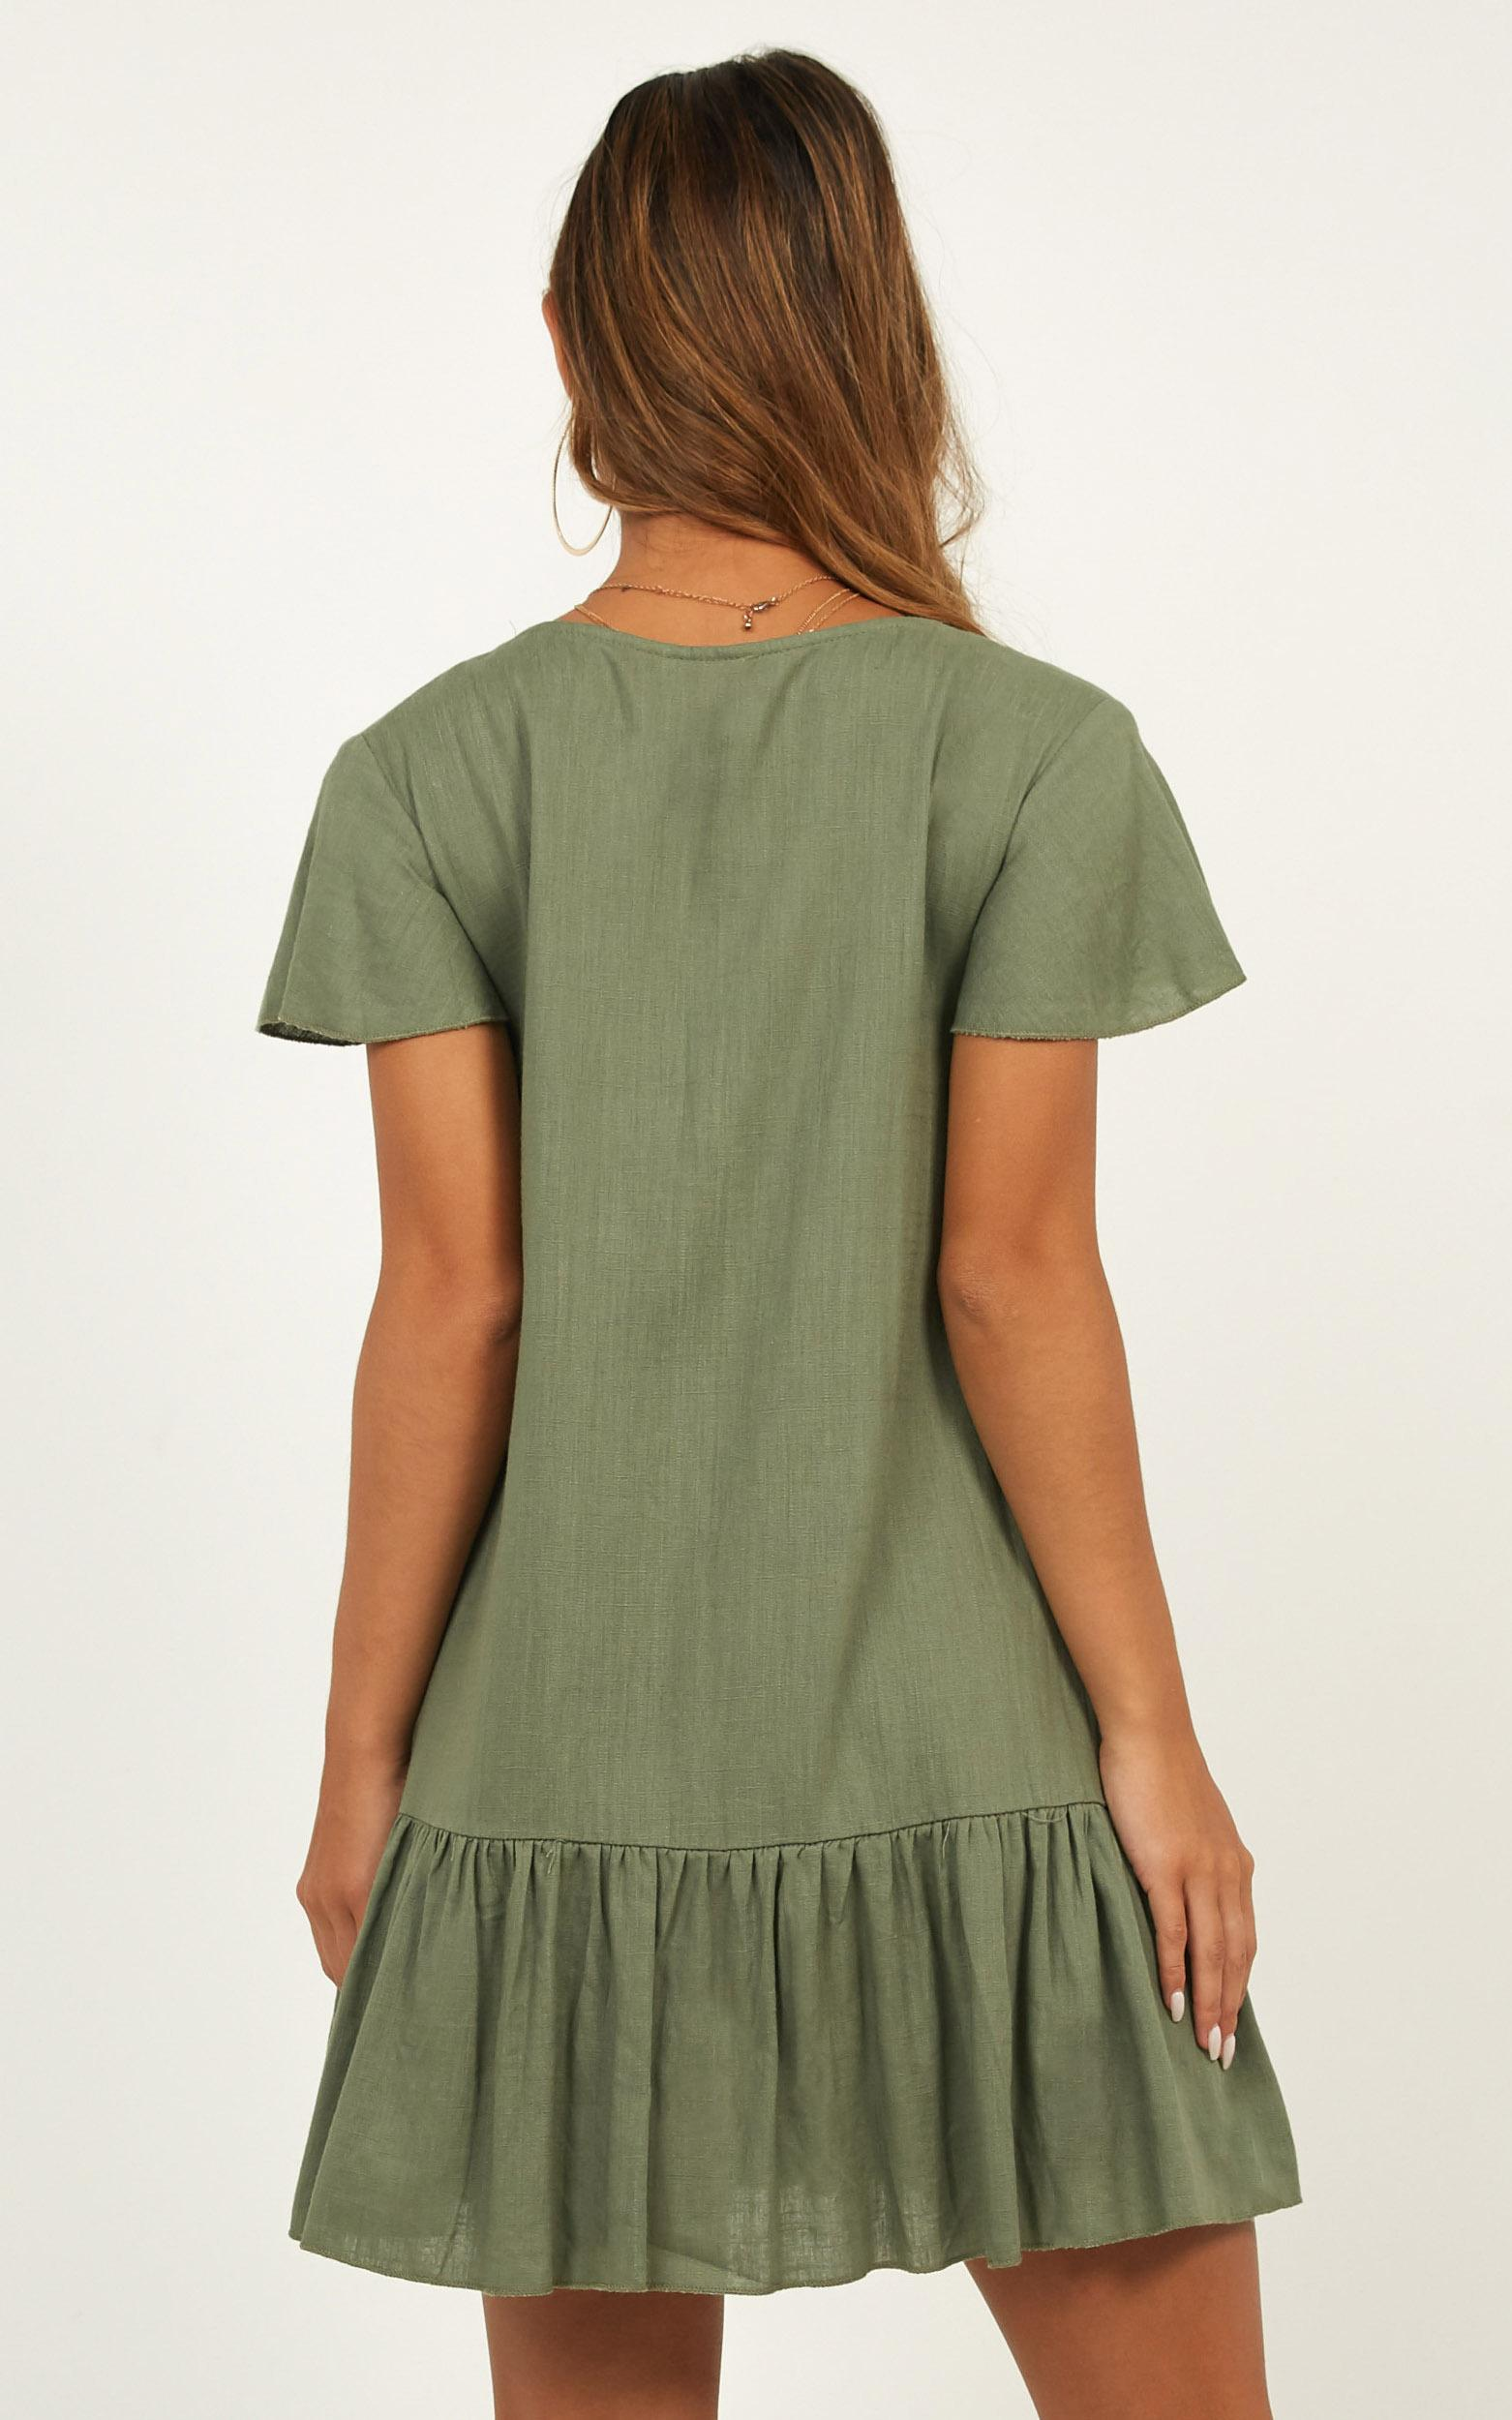 All Or Nothing dress in khaki linen look - 14 (XL), Khaki, hi-res image number null